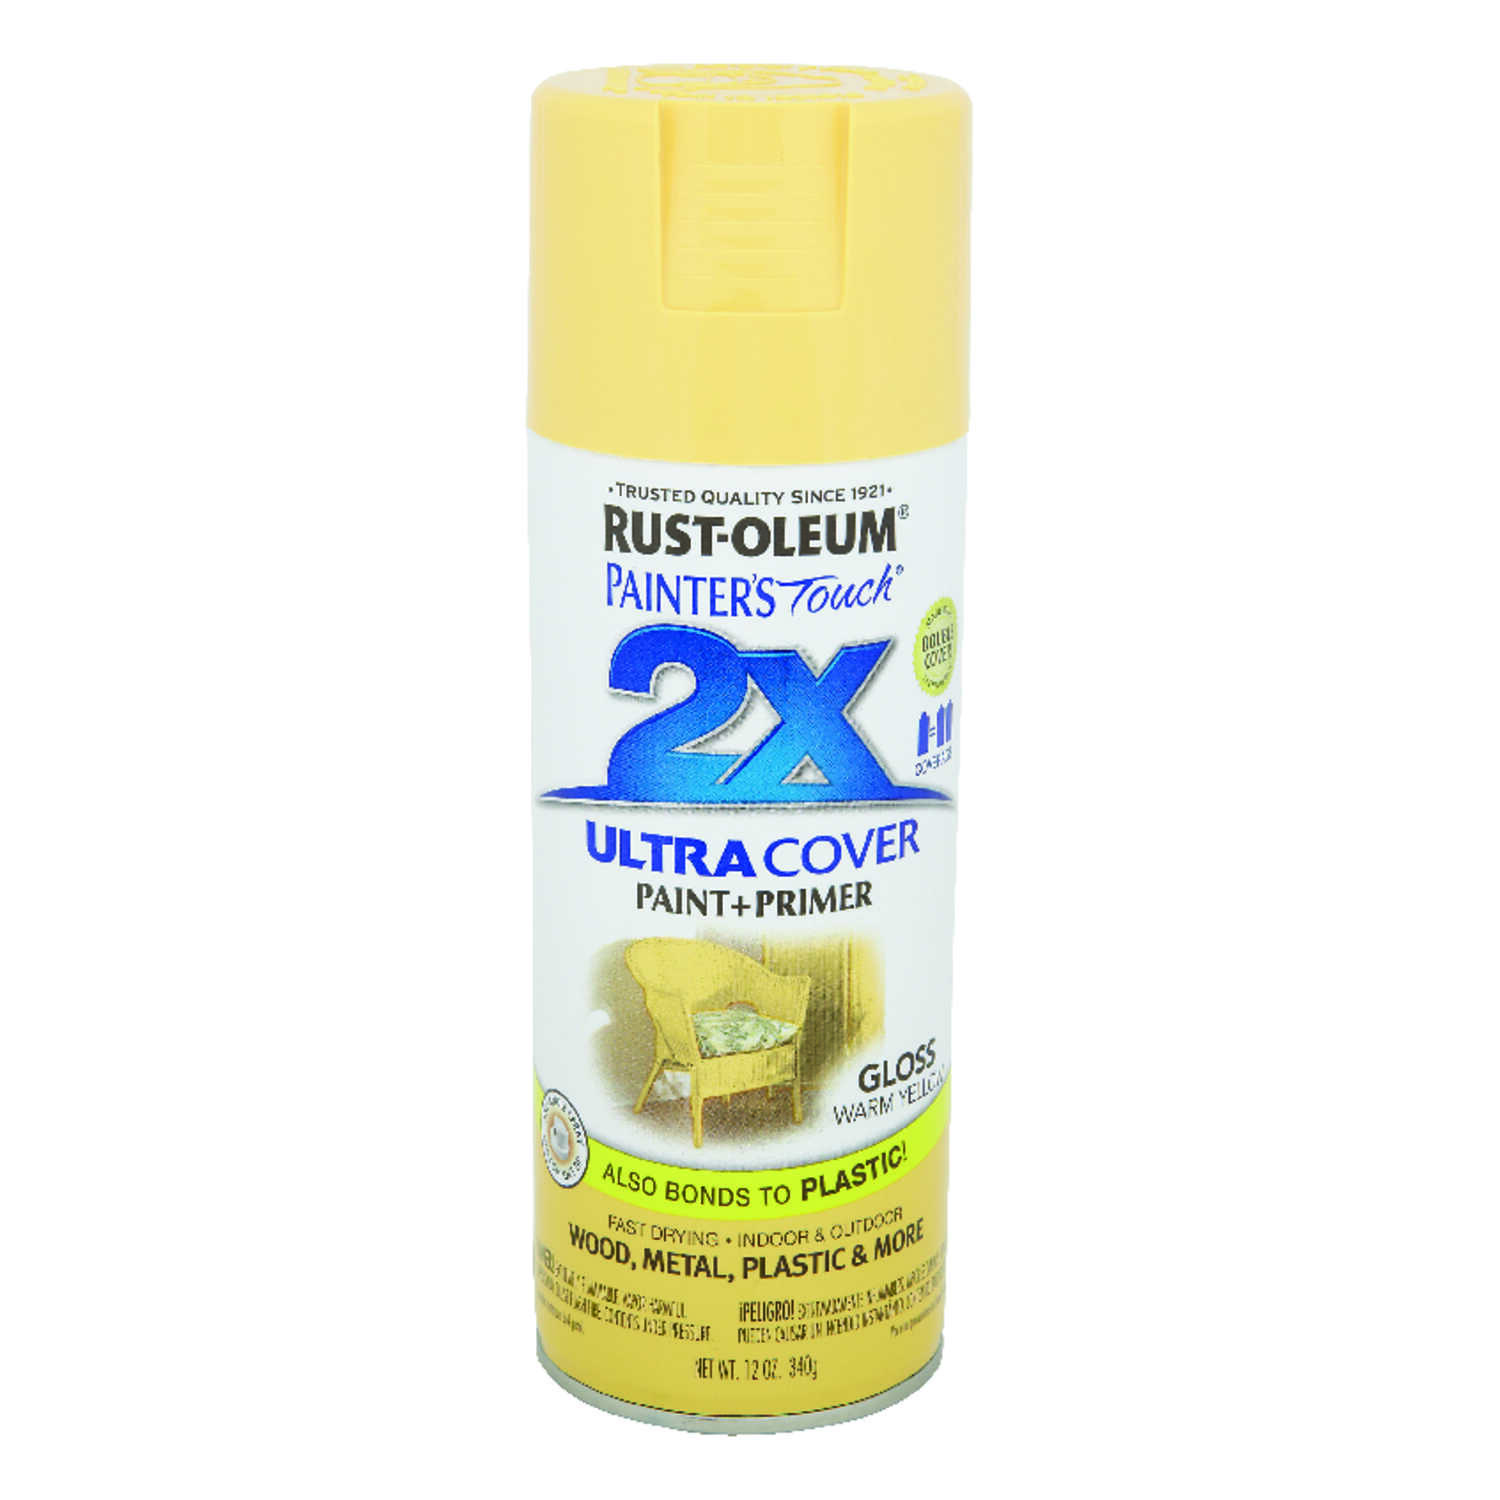 Rust-Oleum  Painter's Touch Ultra Cover  Gloss  Warm Yellow  Spray Paint  12 oz.